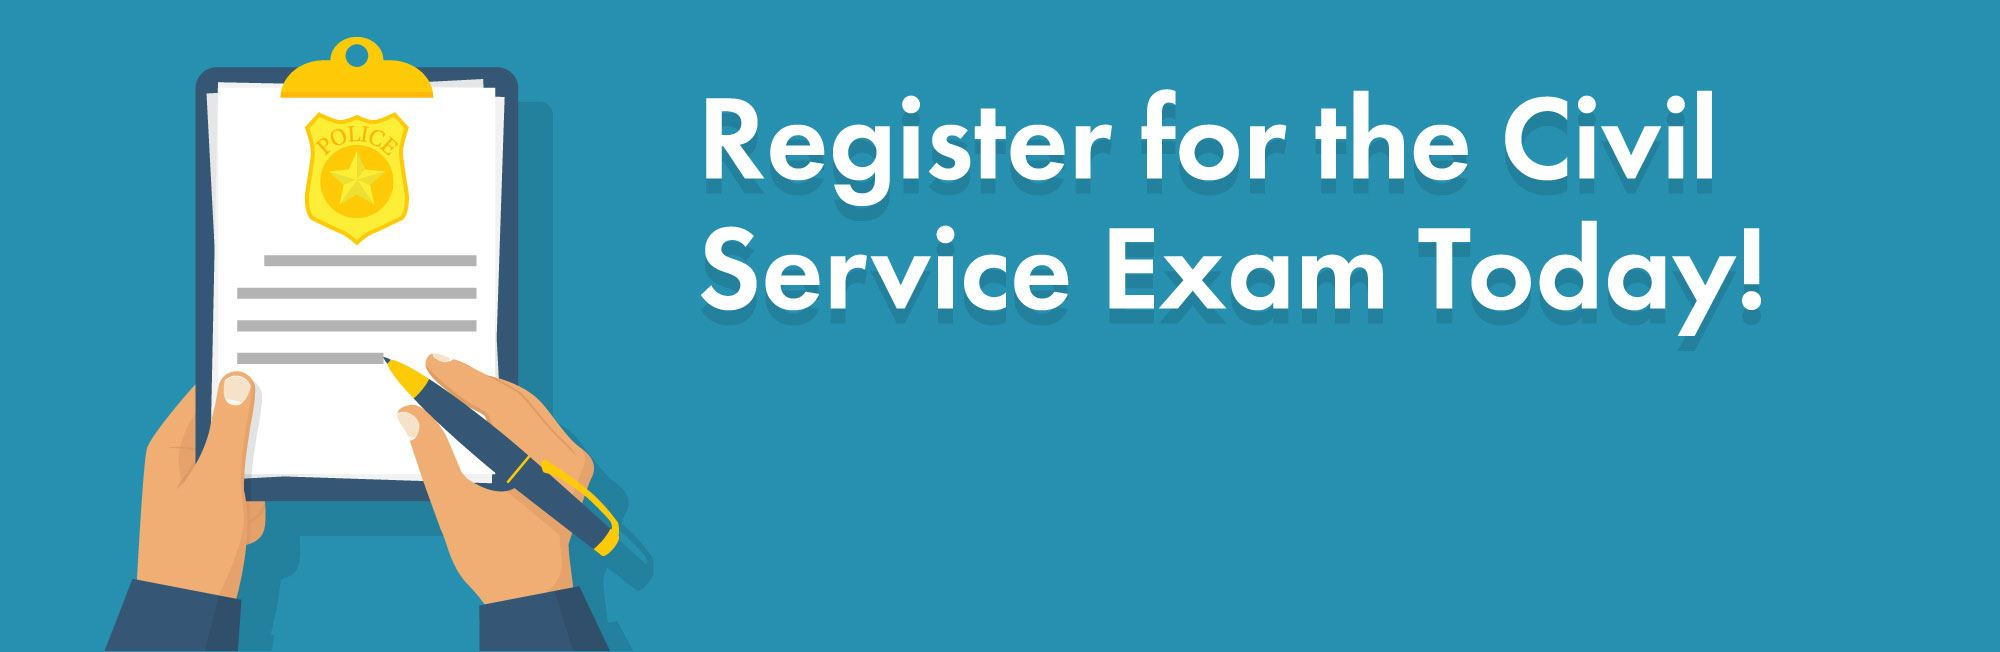 Register for the Civil Service Exam Today!